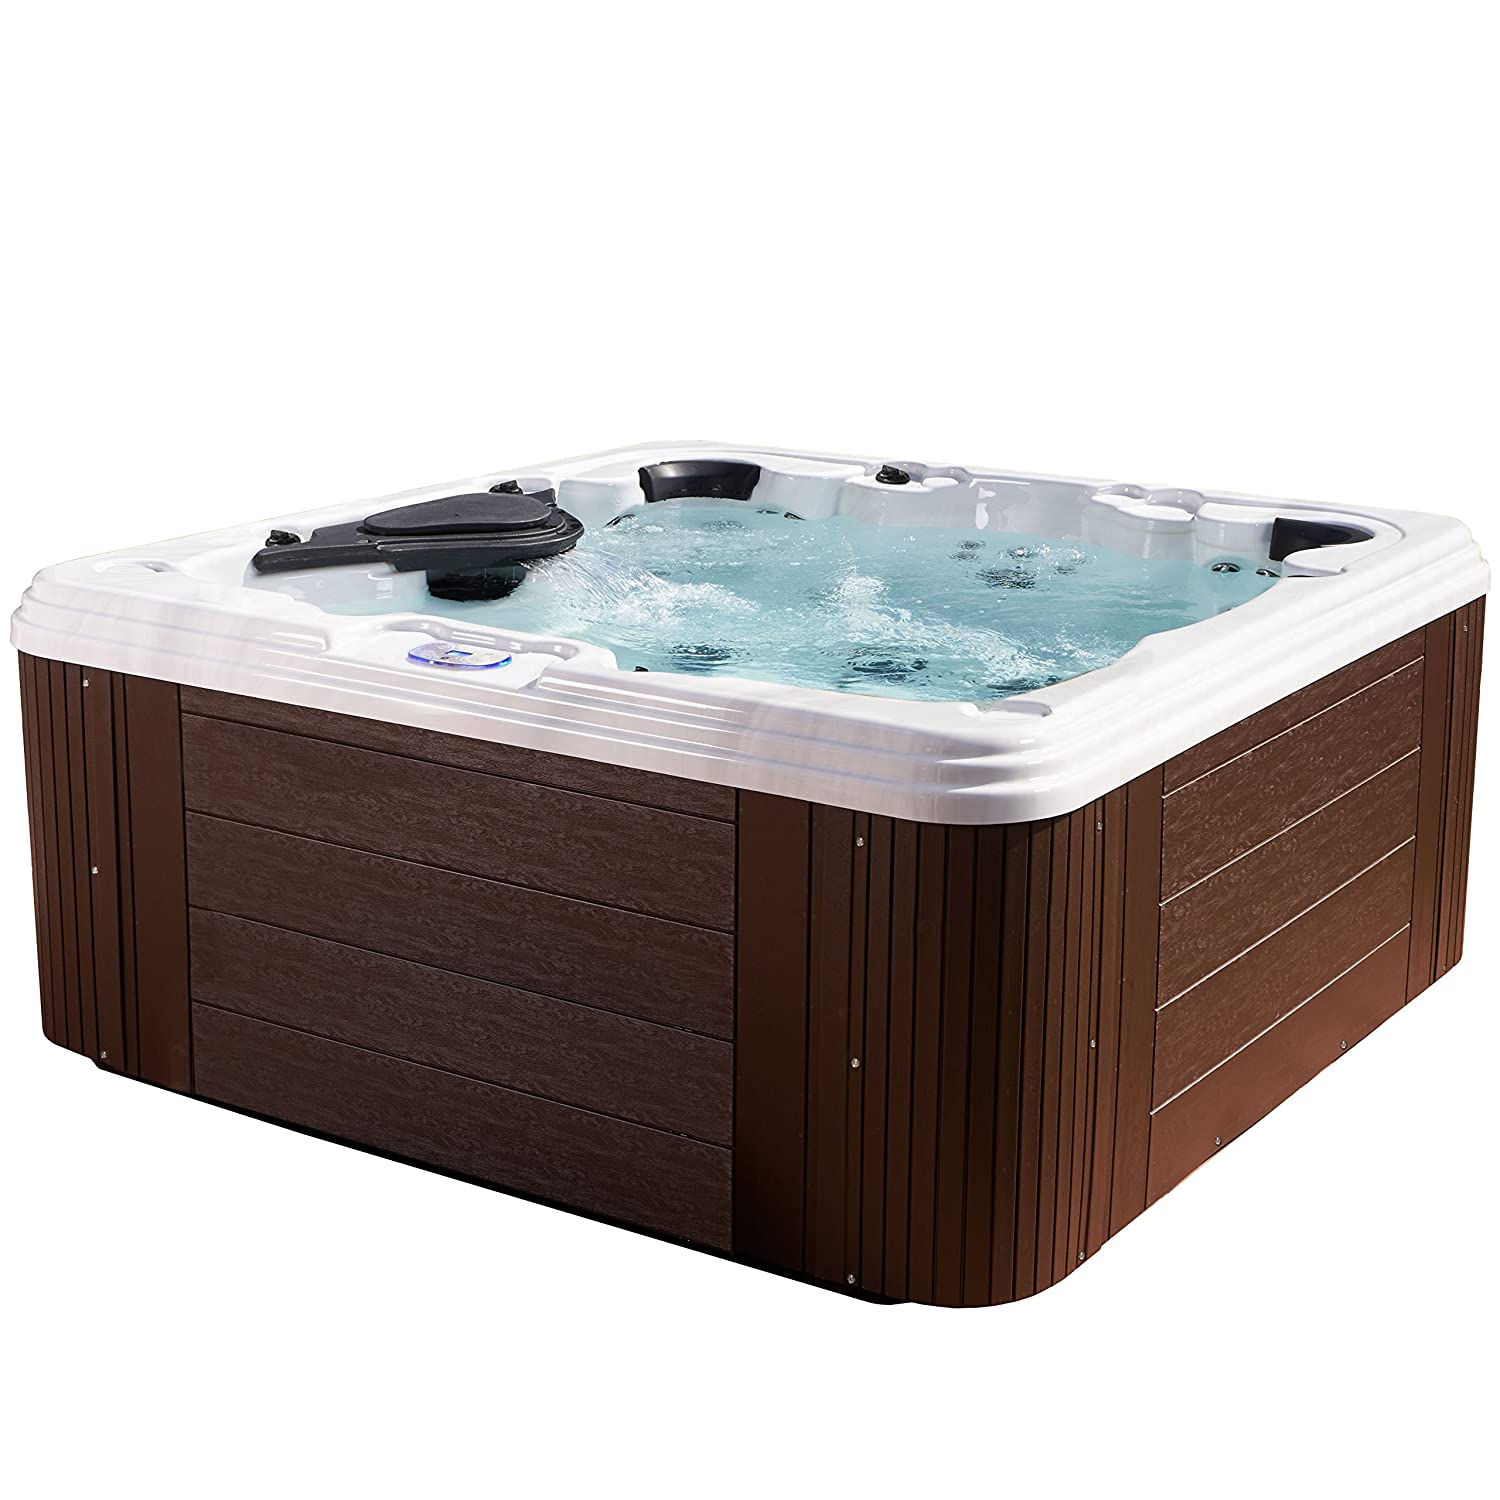 Amazon.com : Essential Hot Tubs - Civility - 60 Jets, Acrylic Hot ...